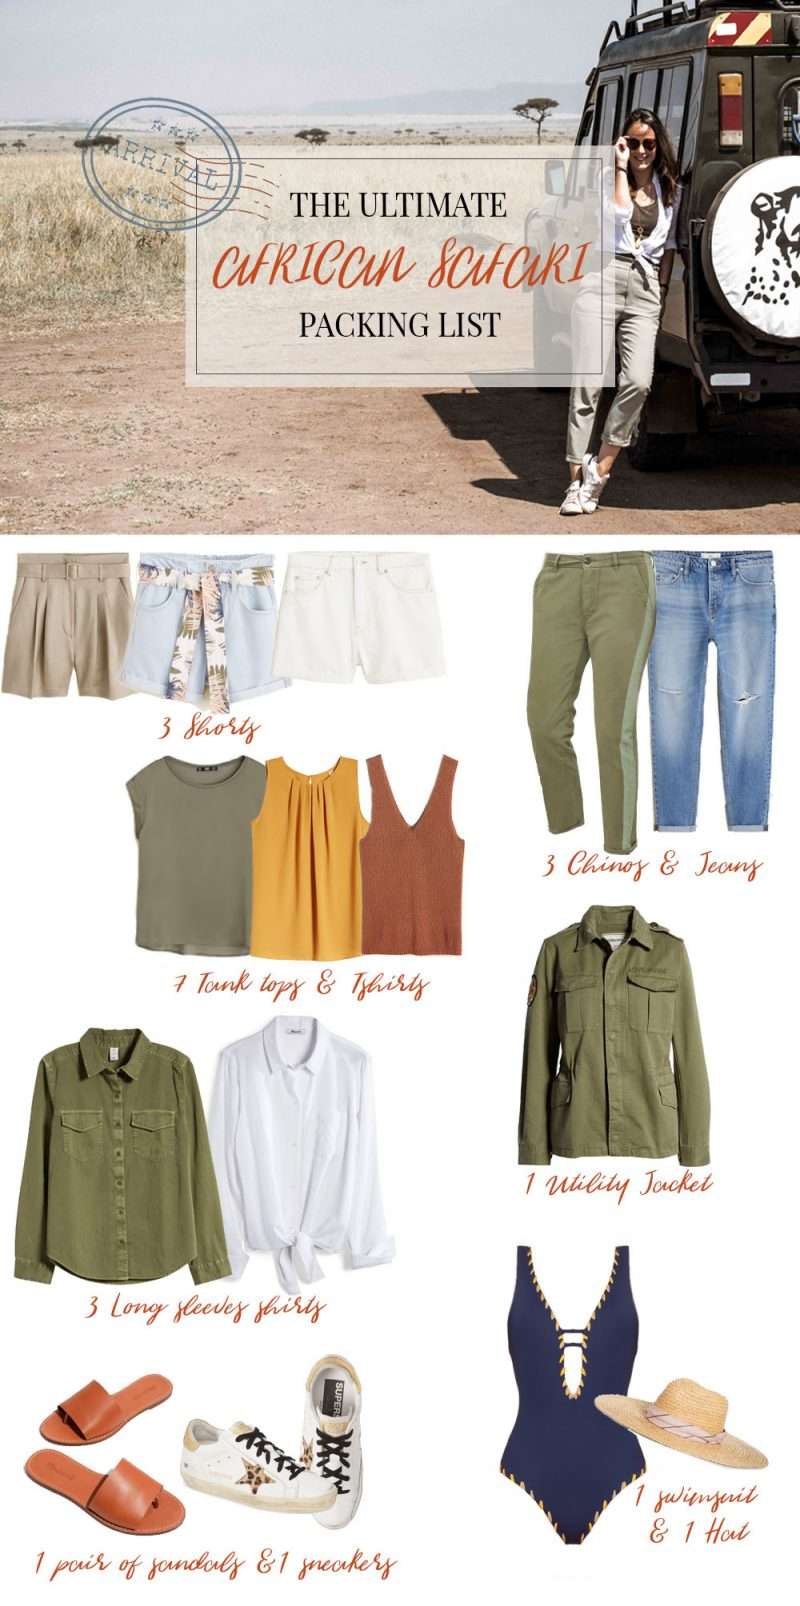 WHAT TO WEAR ON AN AFRICAN SAFARI